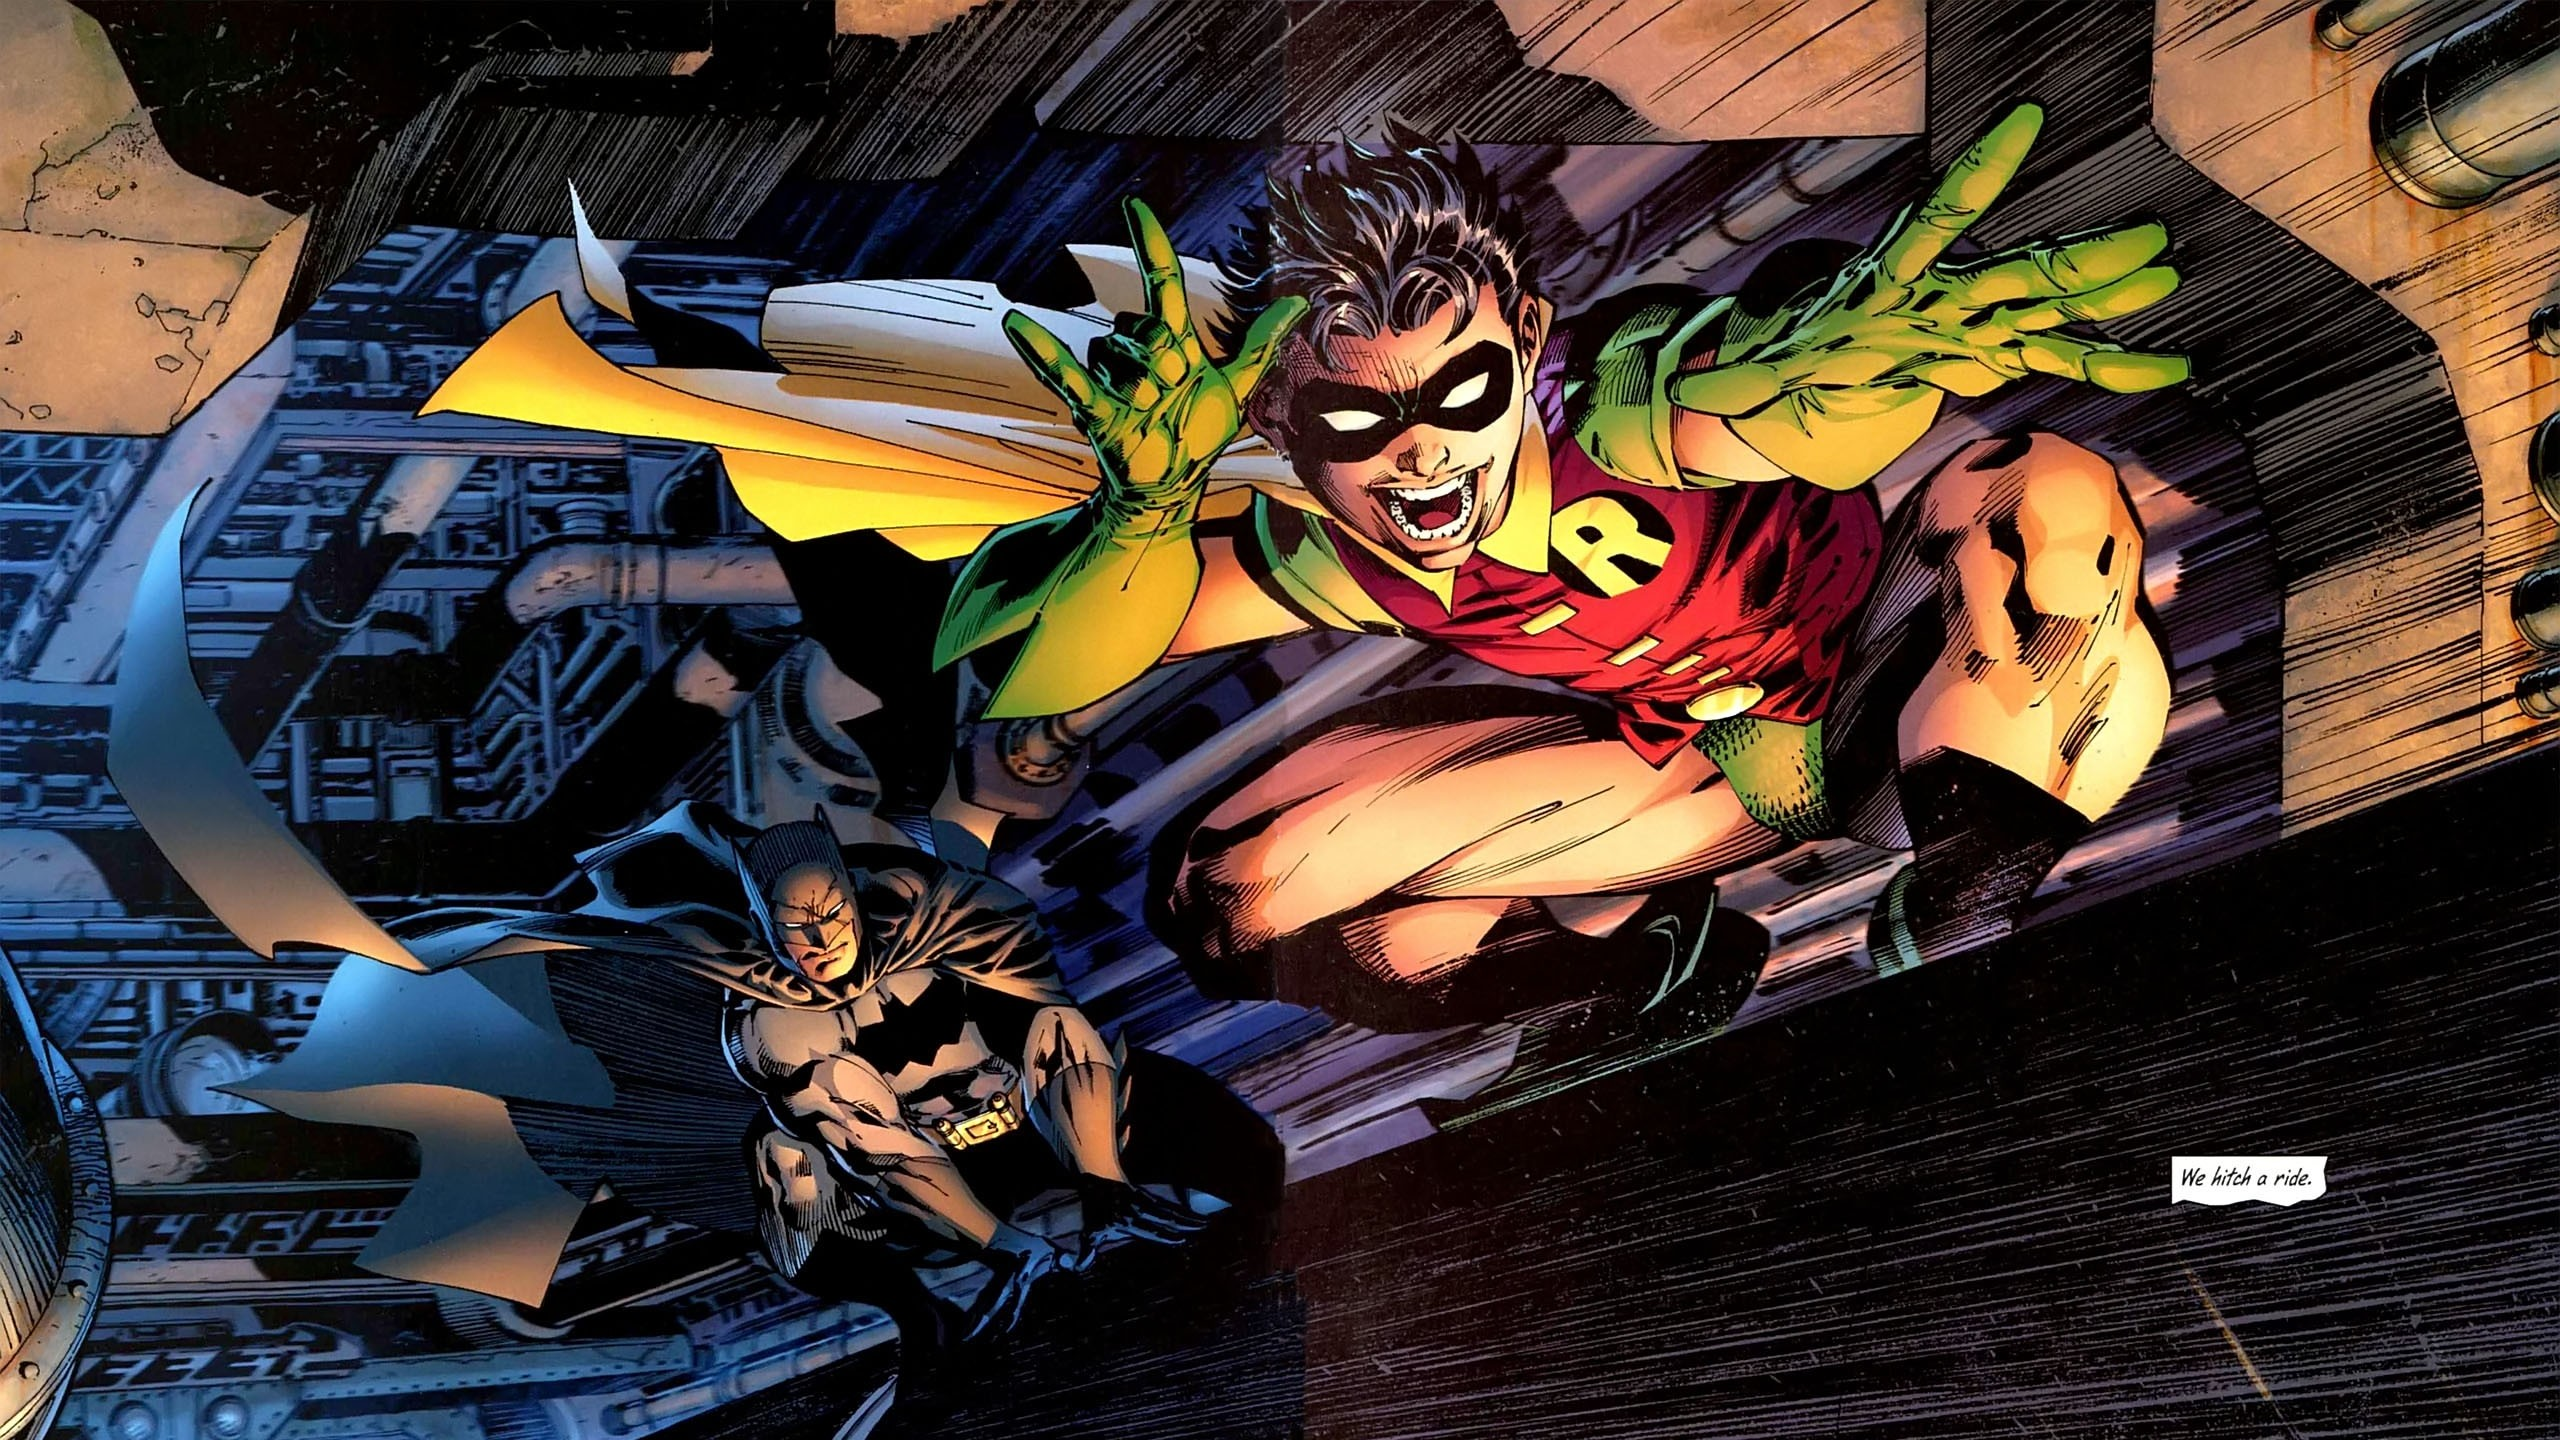 2560x1440 1 all-Star batman & robin HD Wallpapers | Backgrounds - Wallpaper Abyss